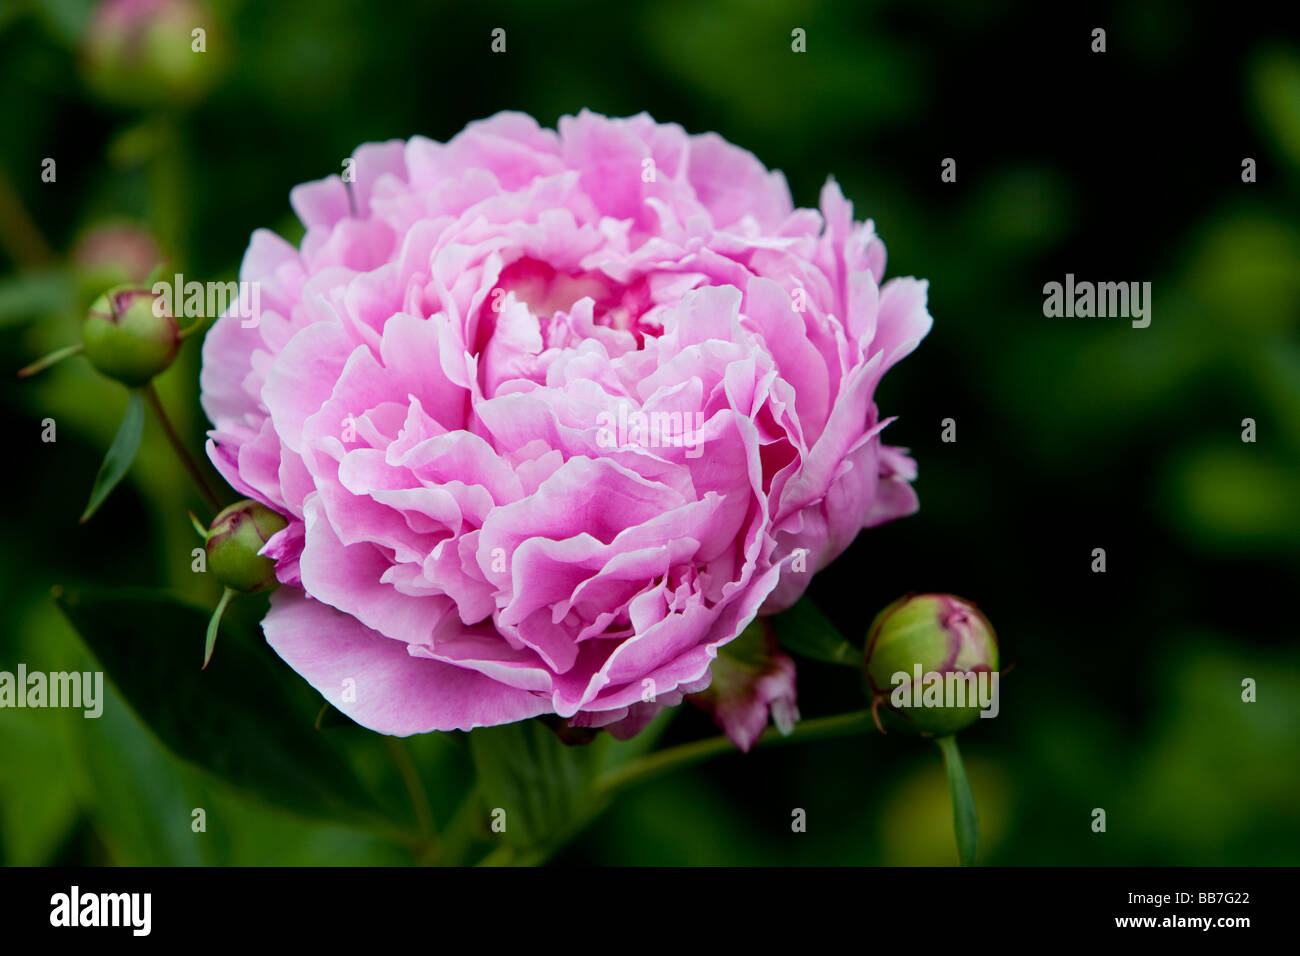 Pink Peony Flower - genus Paeonia, the only genus in the family Paeoniaceae Stock Photo